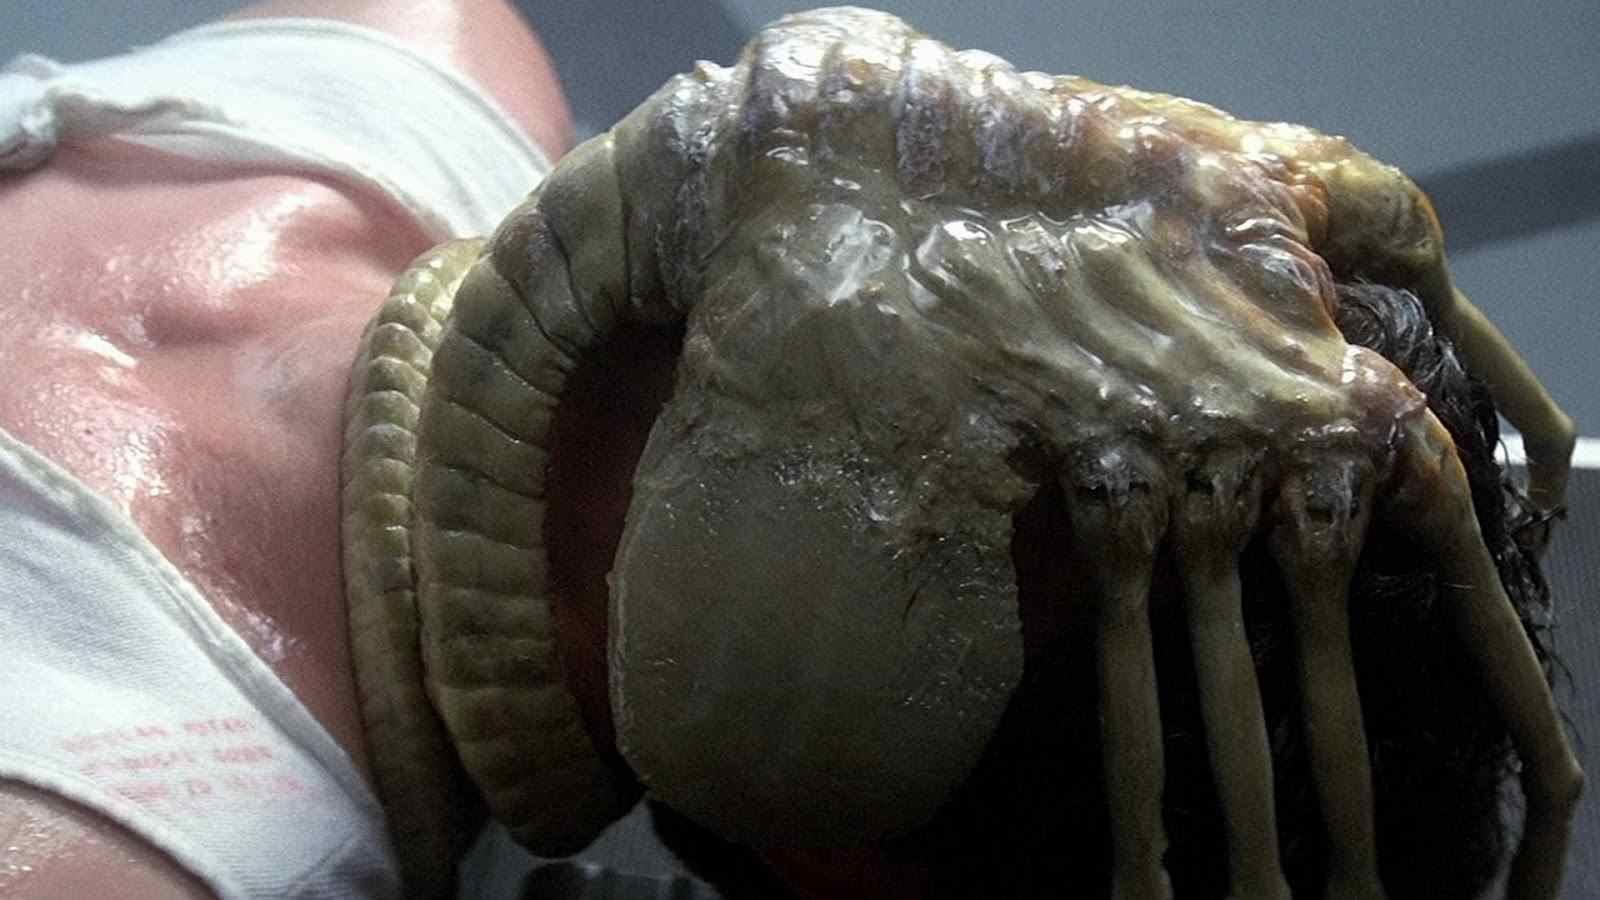 A face hugger in the Ridley Scott horror film Alien.